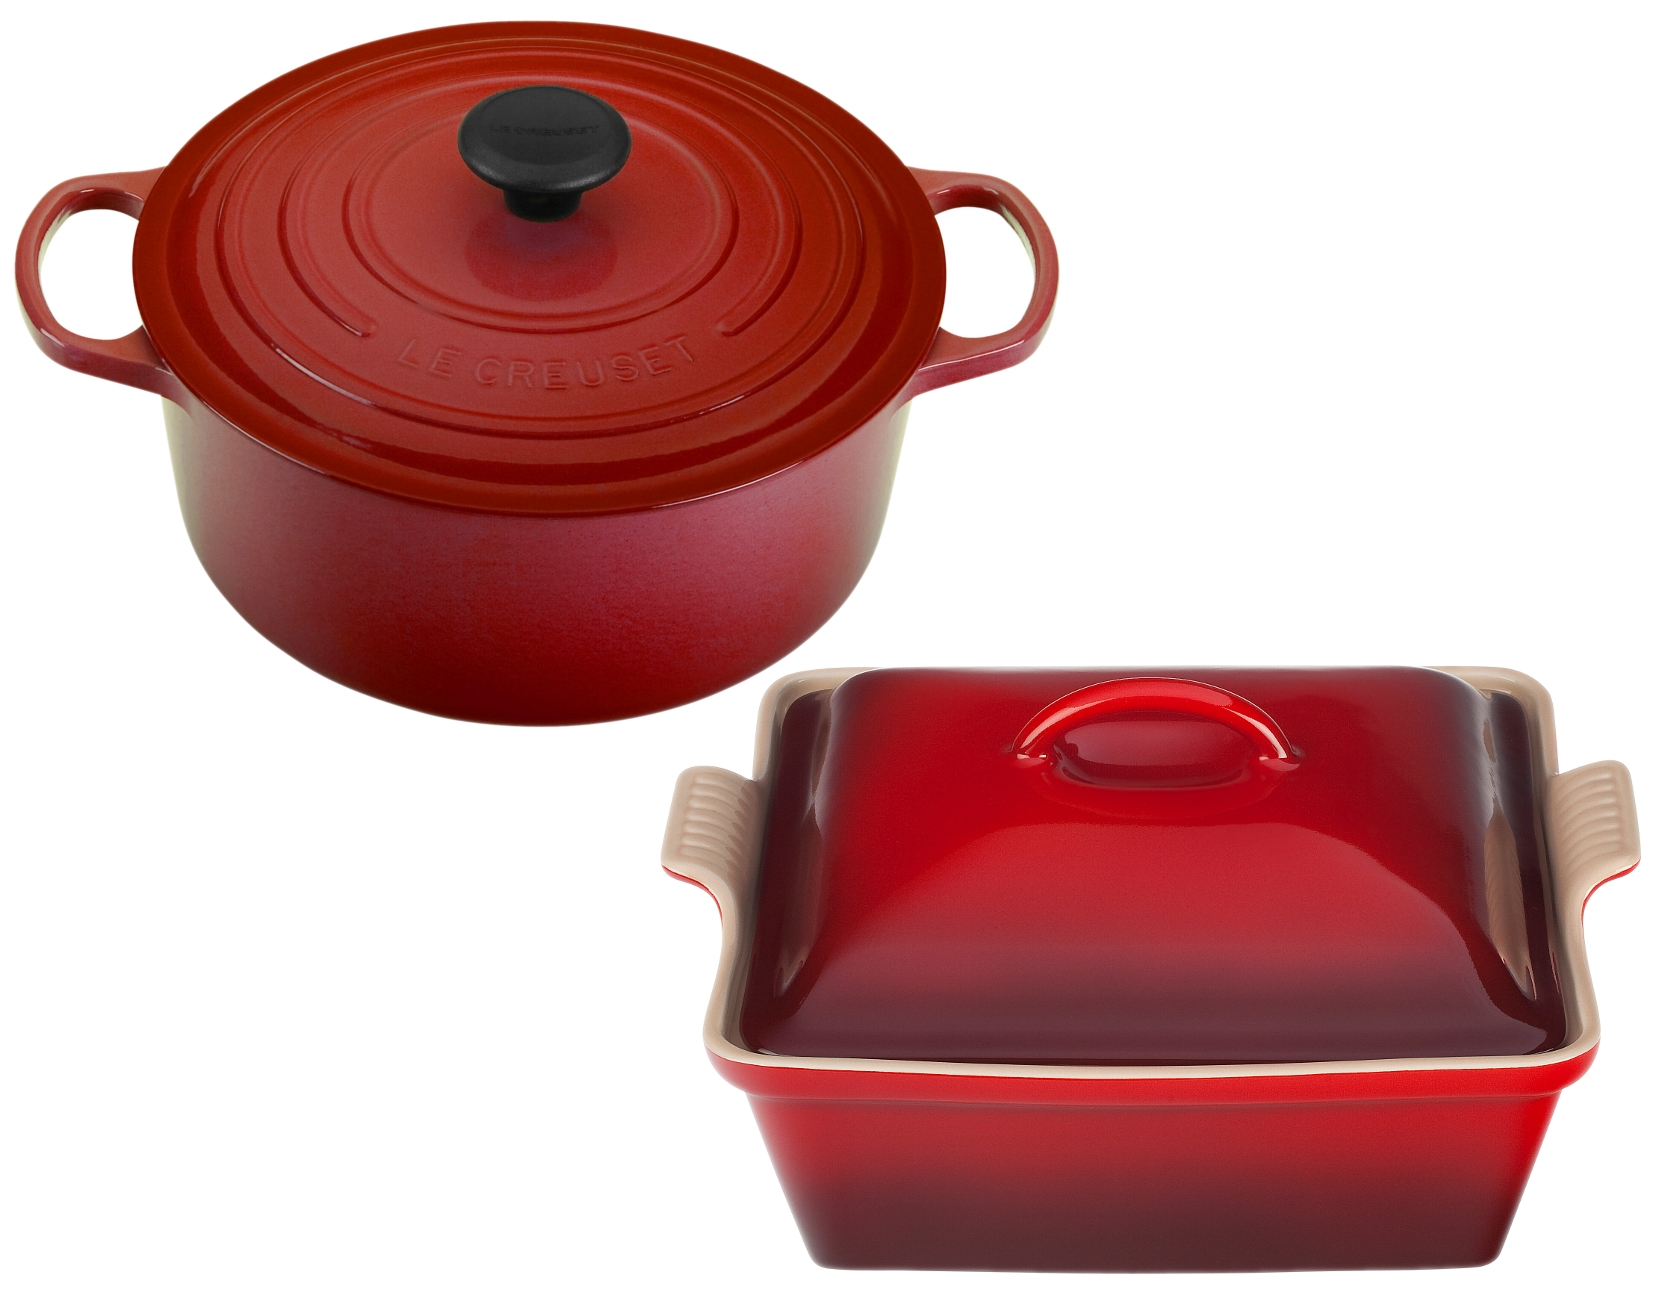 Le Creuset Enameled Cast Iron 3.5 Quart Cherry French Oven with Bonus Covered Casserole